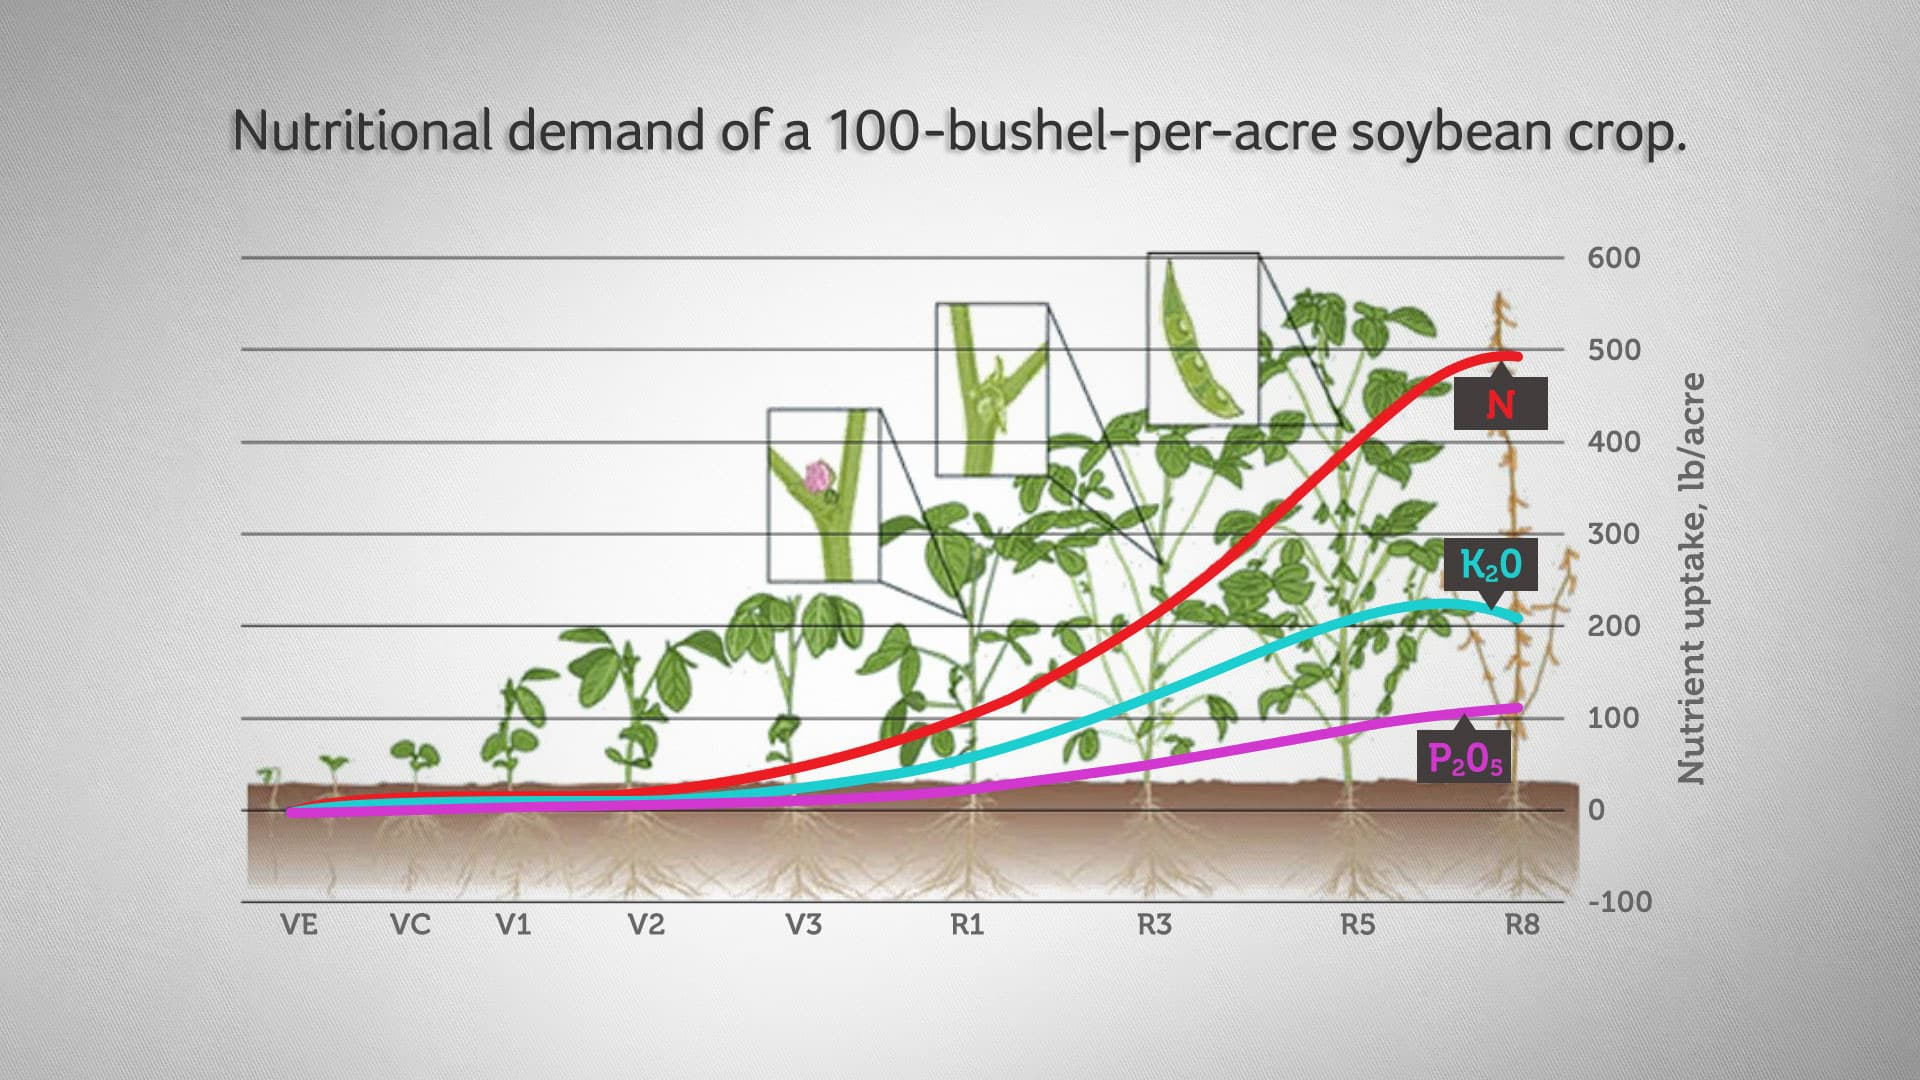 Ekonomics News This Basic Plot Roller Coaster Diagram Includes 4 Differentiated Figure 2 Nutritional Demand Of A 100 Bushel Per Acre Soybean Crop Bender Et Al 2015 Ipni 2014 Image Nordby 2004